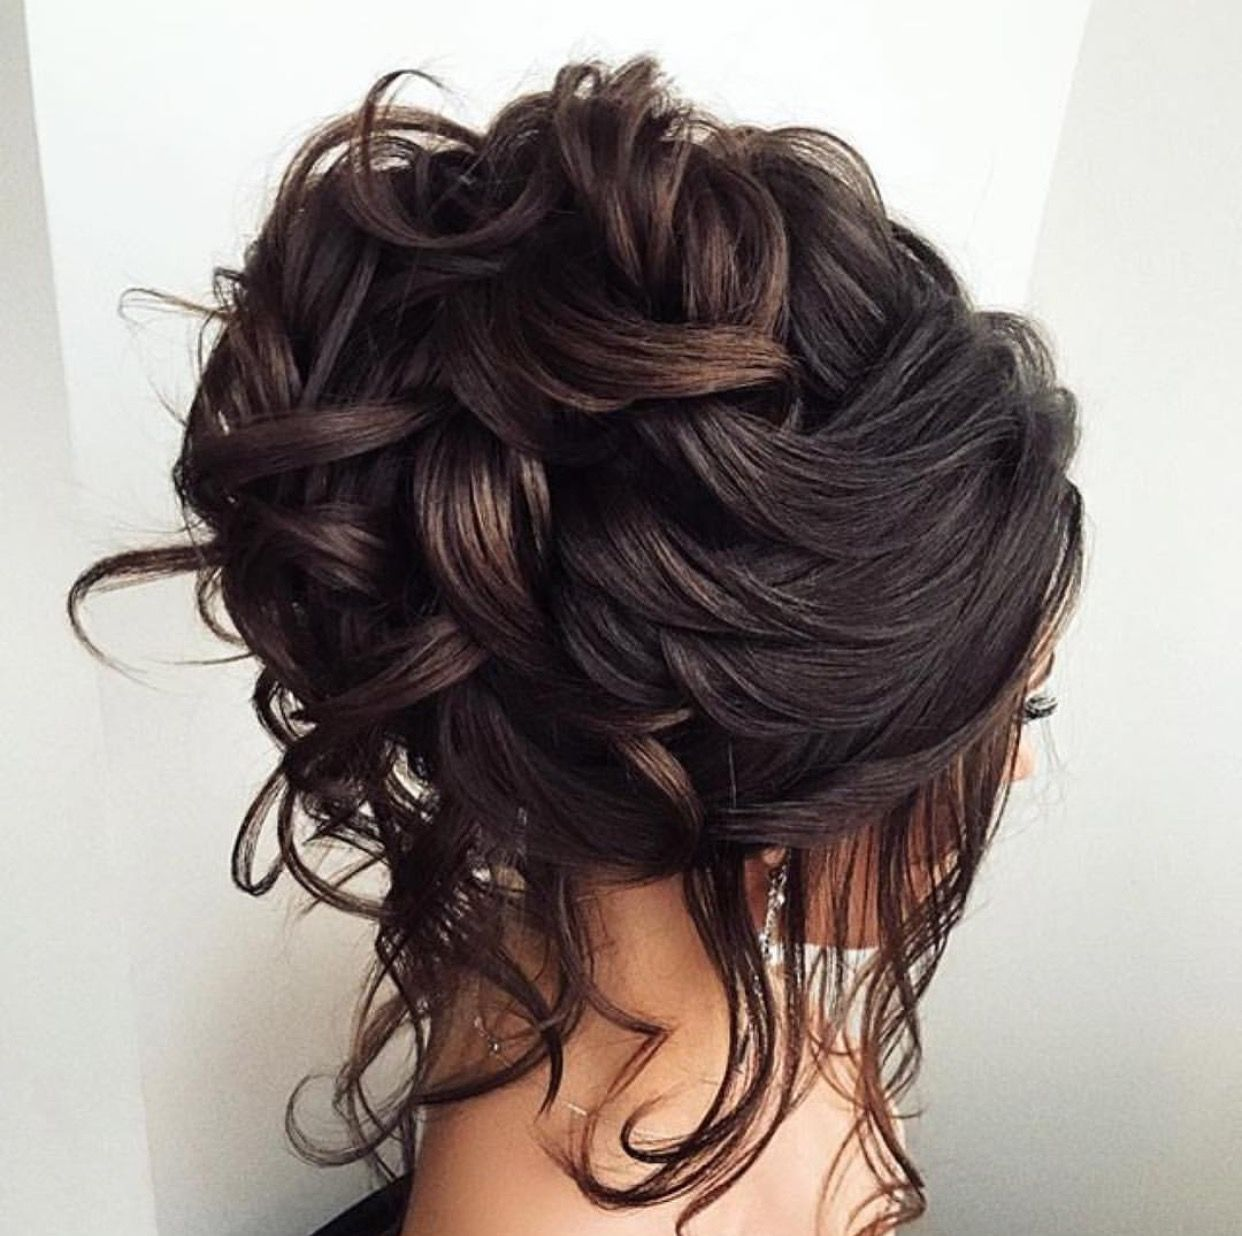 Loose Curly Updobridal Updo CurlsThere Are Many Ways To Make Your Wedding Hairstyle Romantic